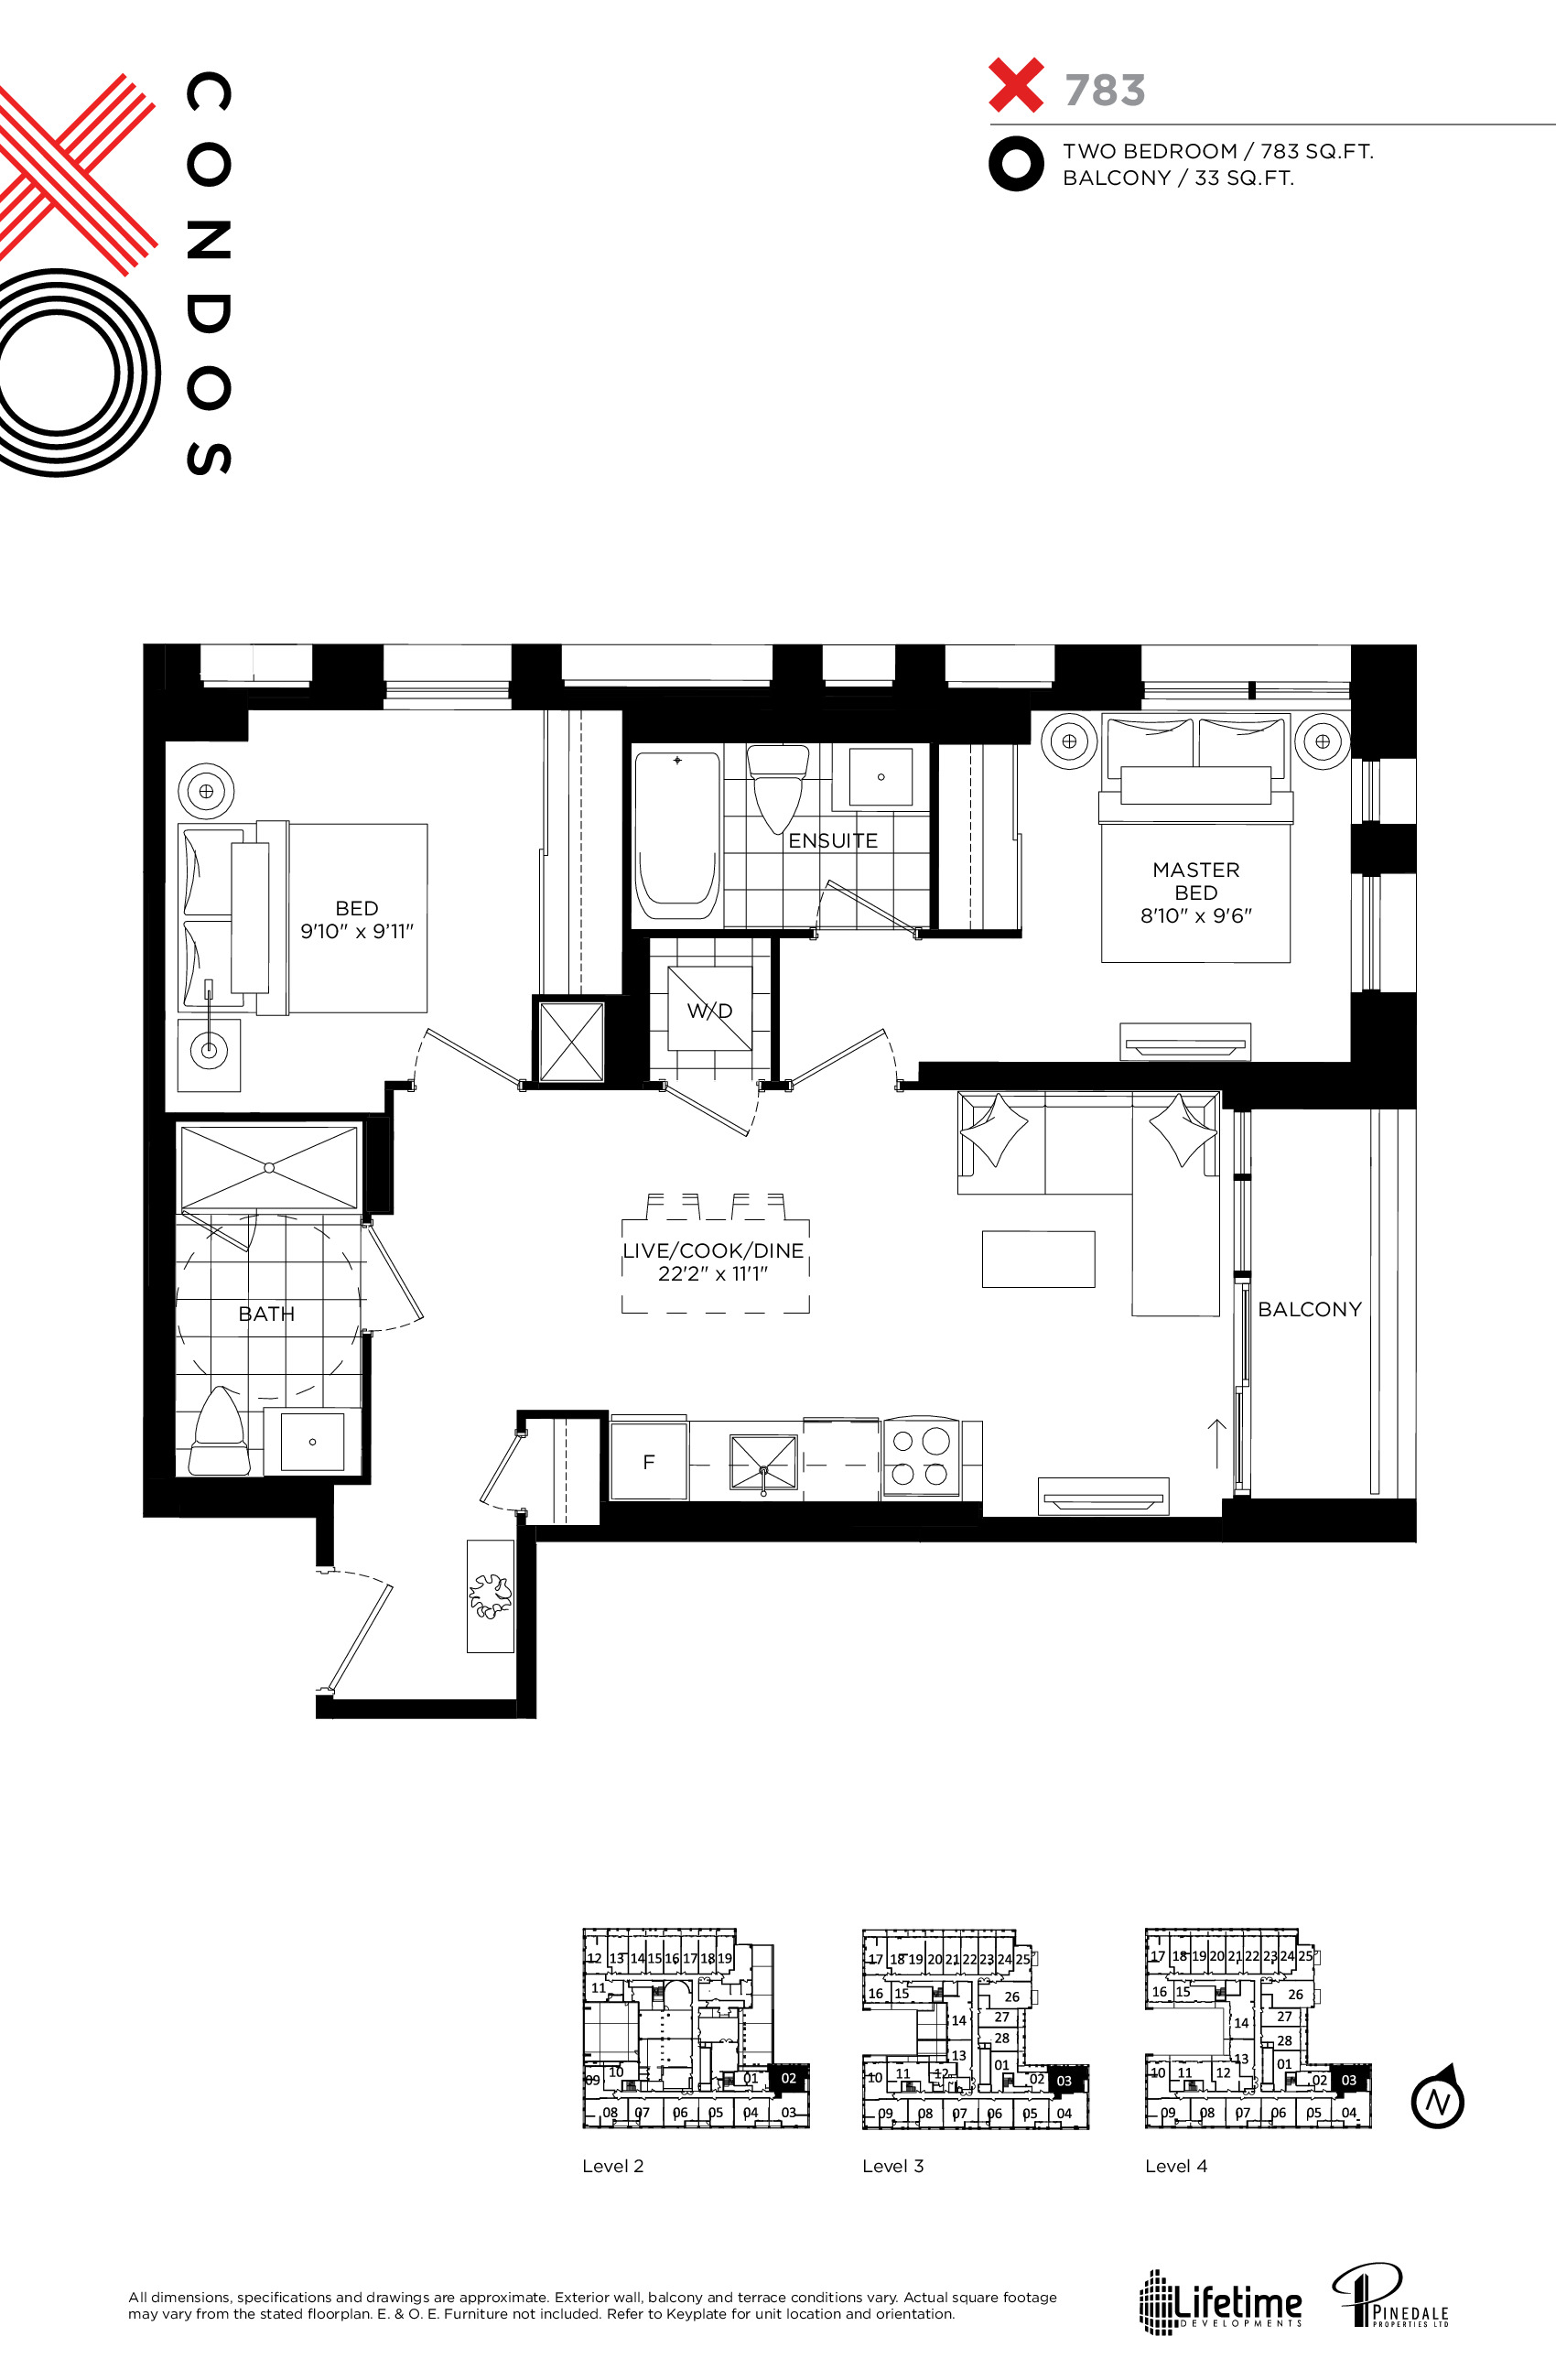 X783 Floor Plan at XO Condos - 783 sq.ft